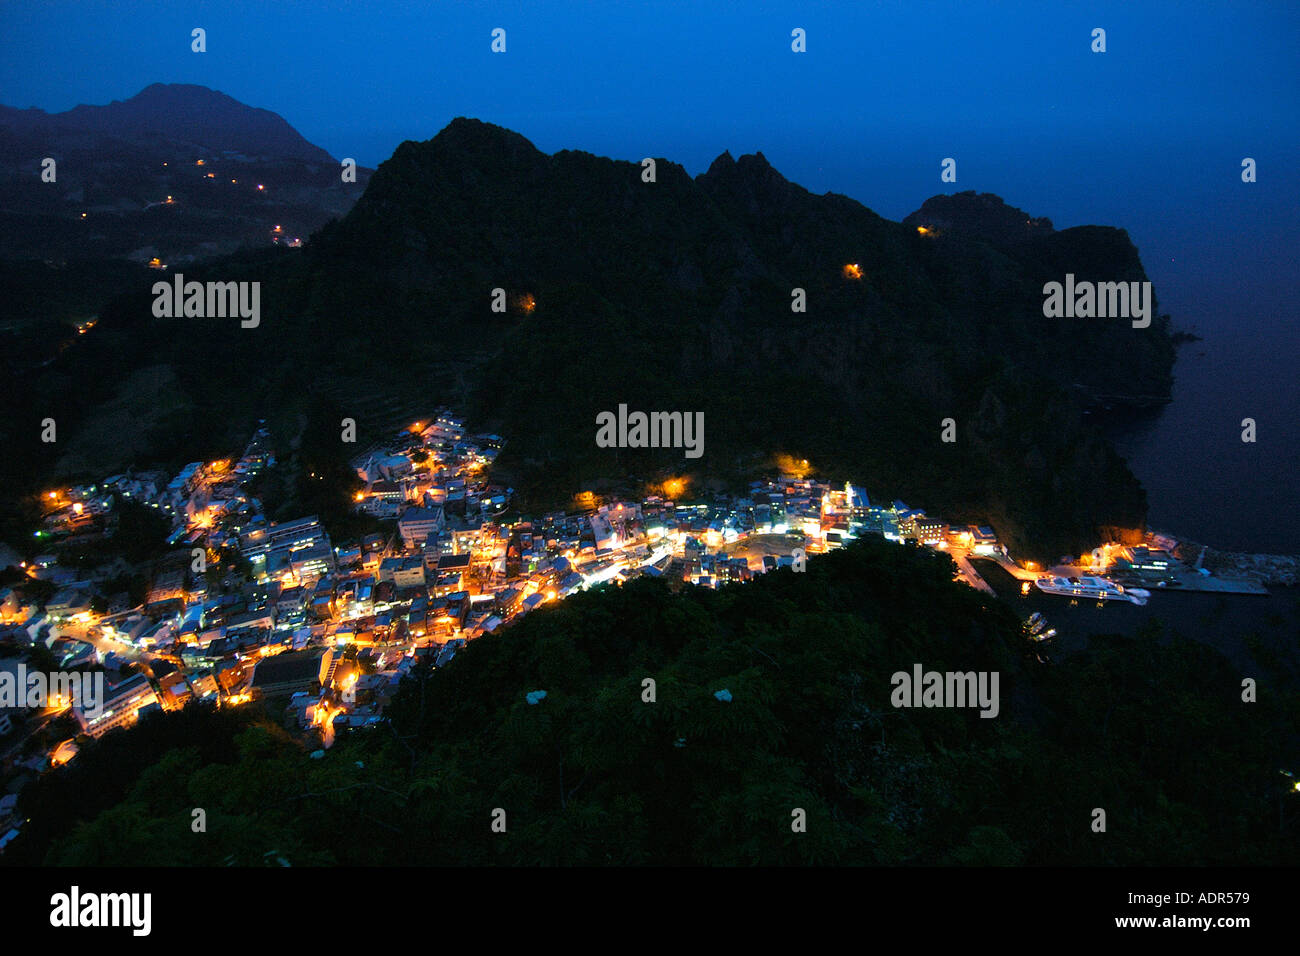 Village of Dodong Ri at night Ulleung Do island South Korea East Sea Stock Photo